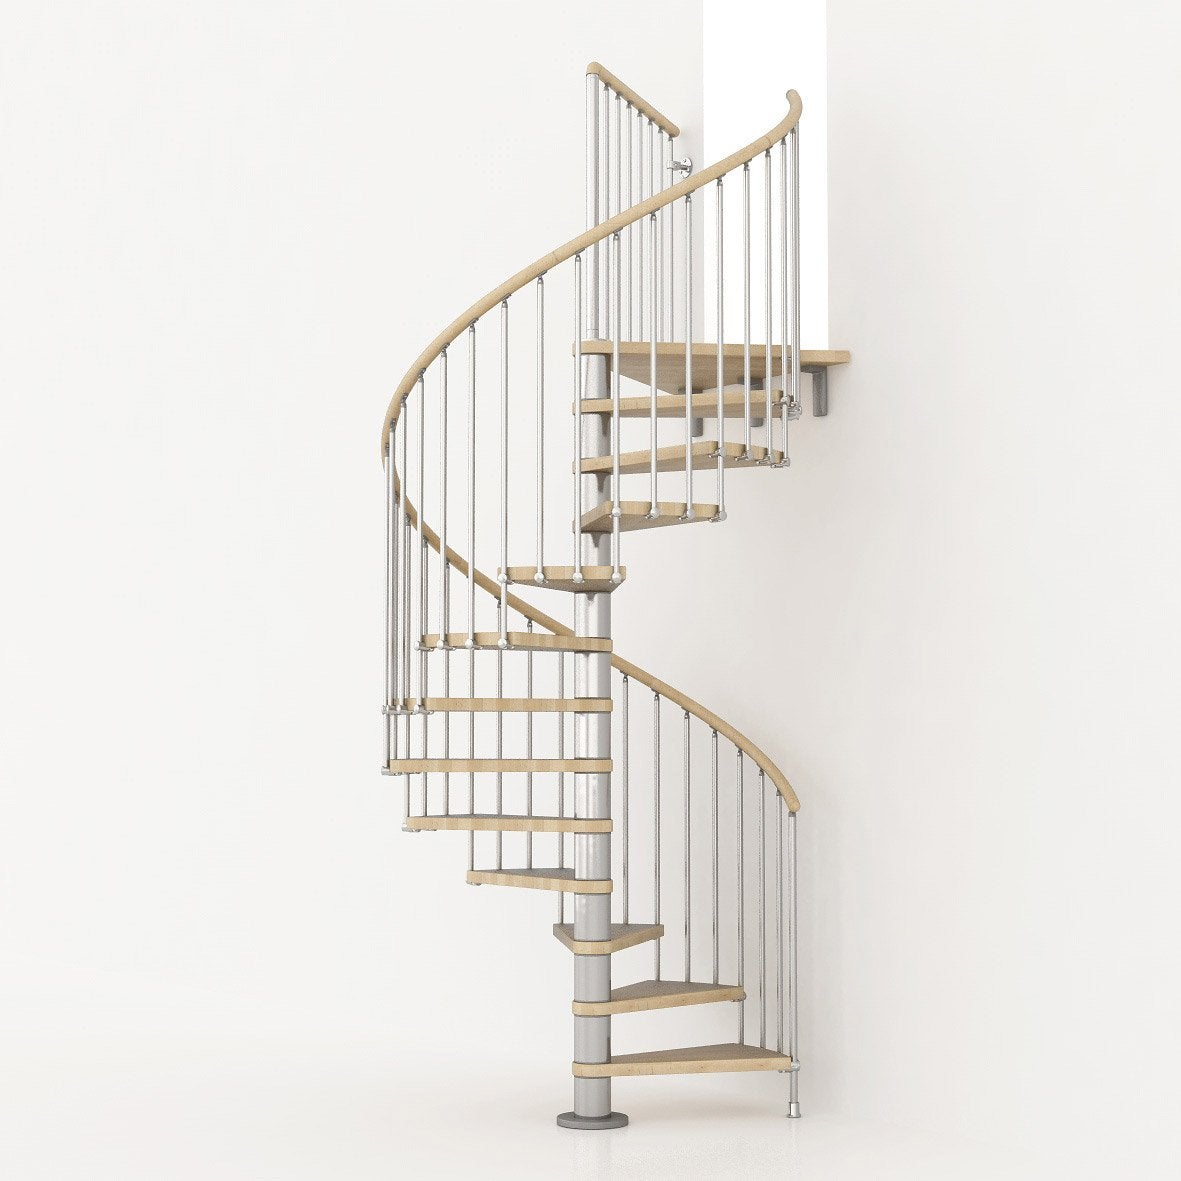 Escalier colima on rond ring structure m tal marche bois leroy merlin - Escalier colimacon plan ...